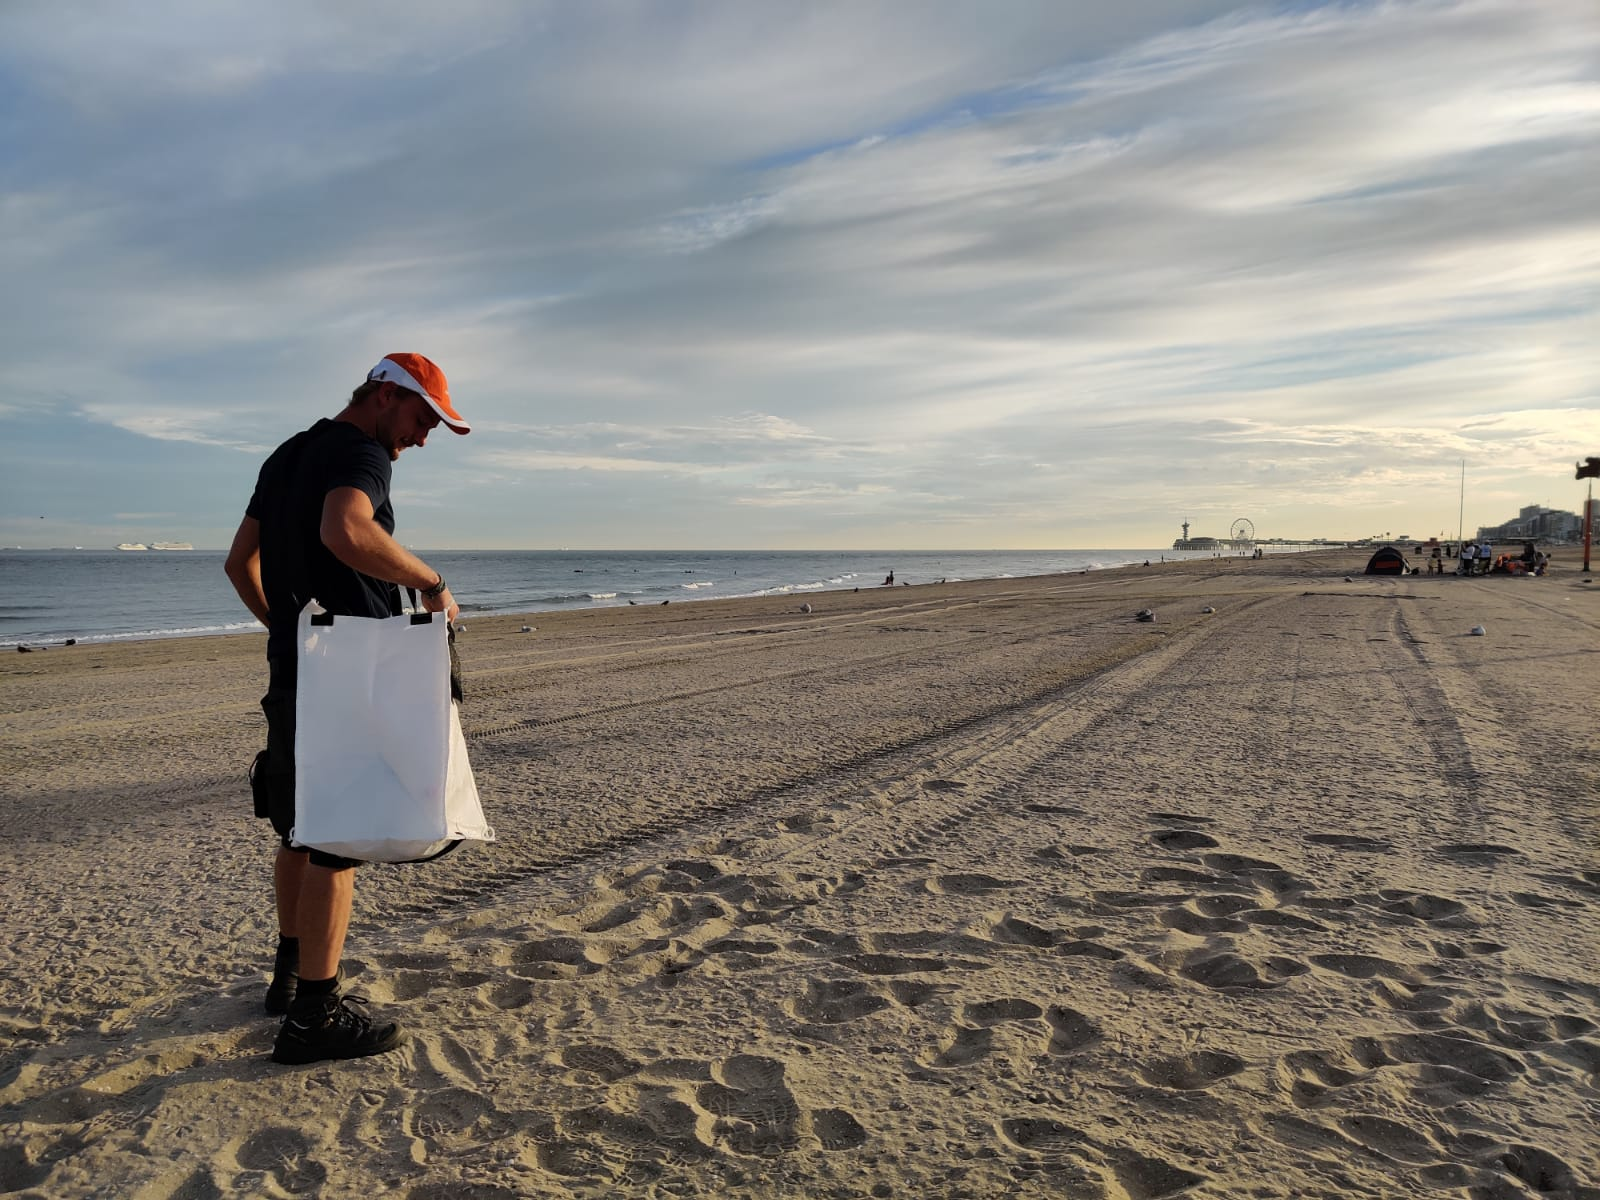 beach-clean-up-bag.jpg